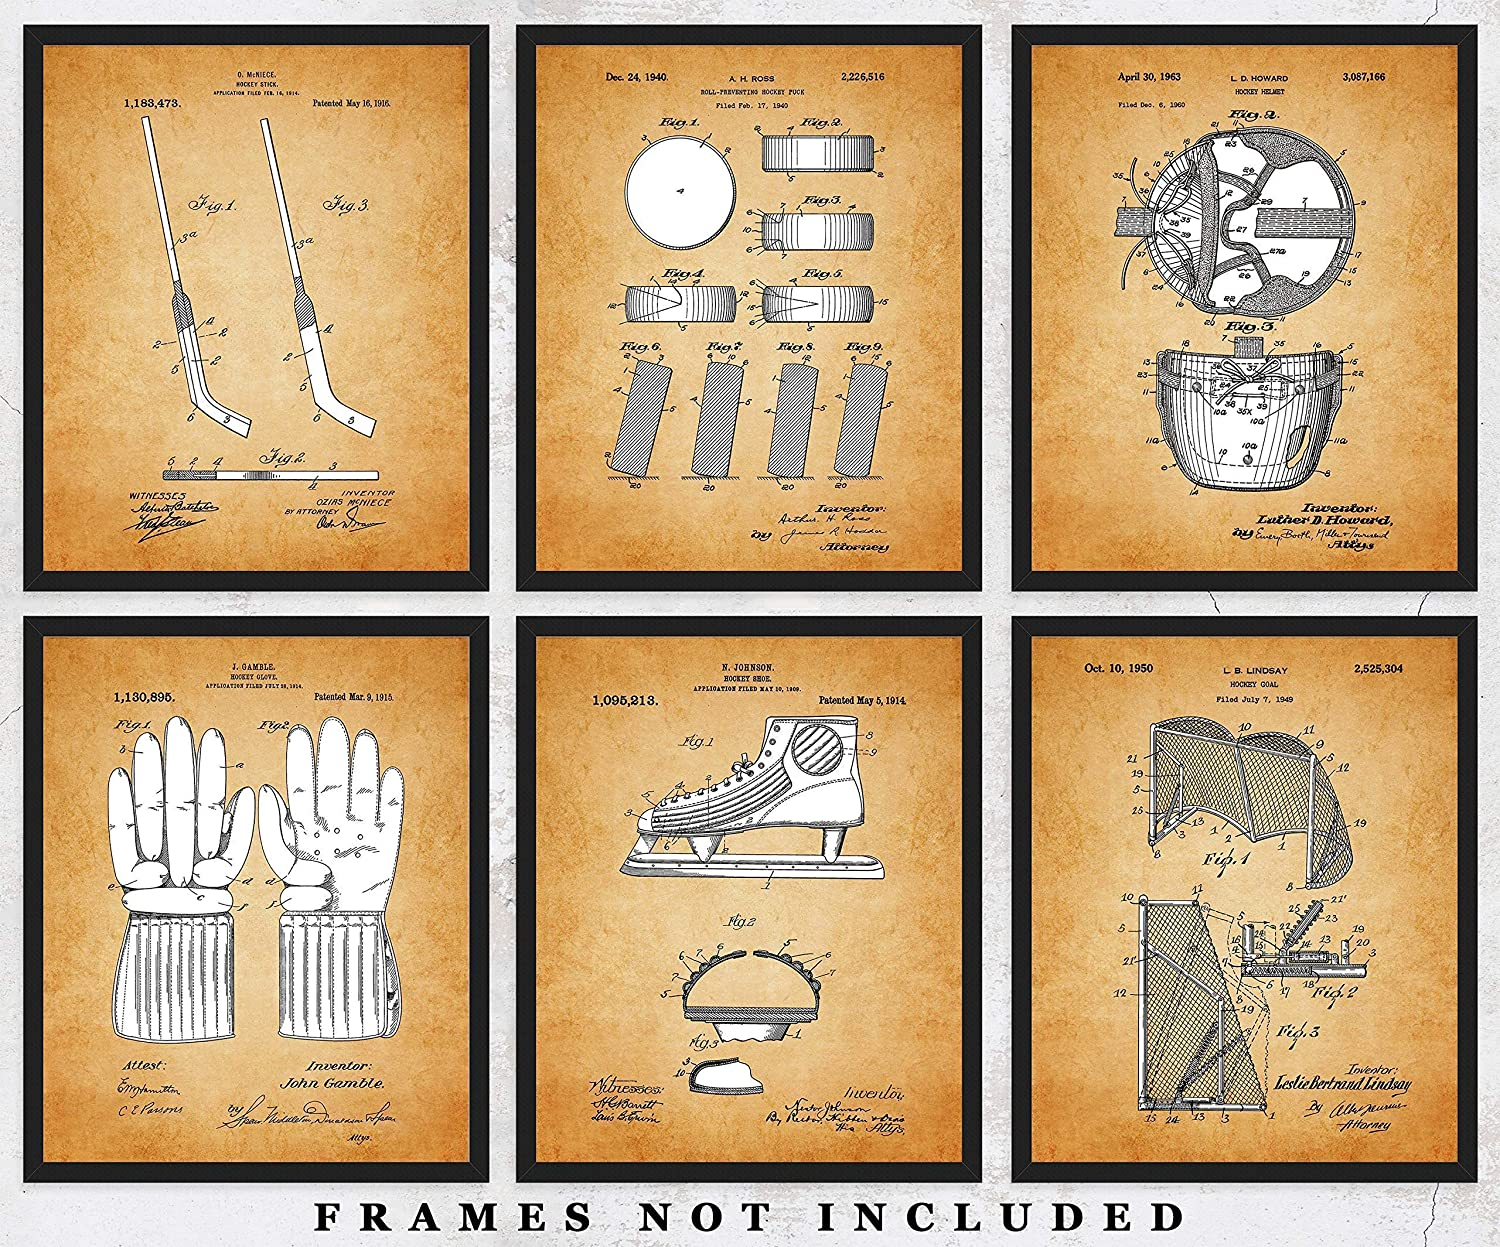 Hockey Patent Prints Set of 6 Unframed 8x10 Photos - Vintage Wall Art Sports Posters For Home Office, Game Room & Man Cave Decor - Great Gift Under $25 for Boys, Men, Coach